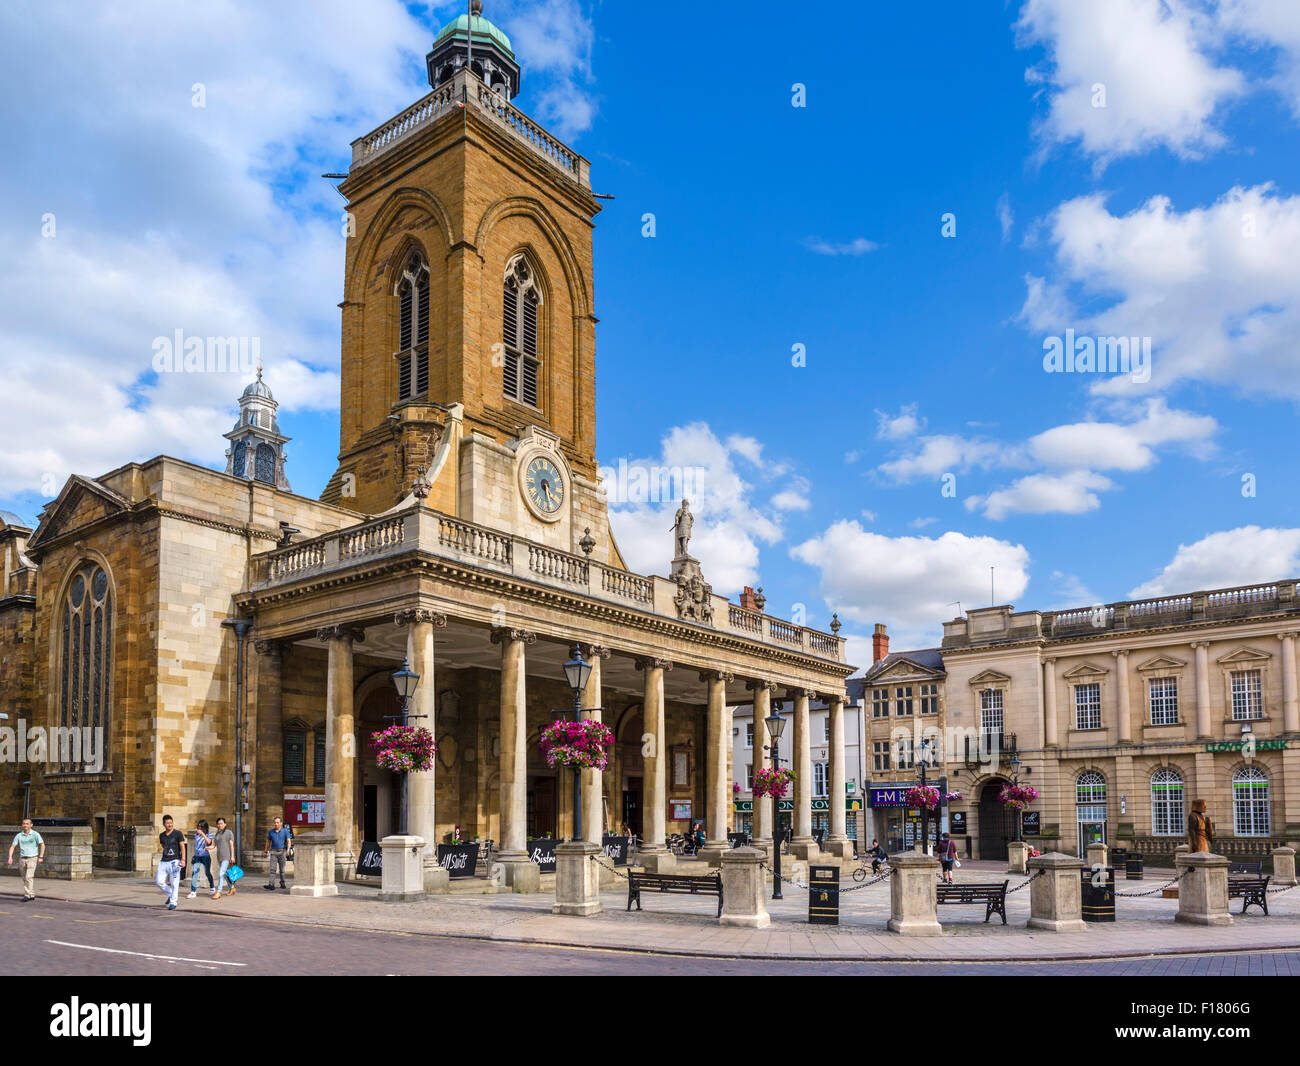 All Saints Church from Mercer Row in the town centre, Northampton, Northamptonshire, England, UK - Stock Image